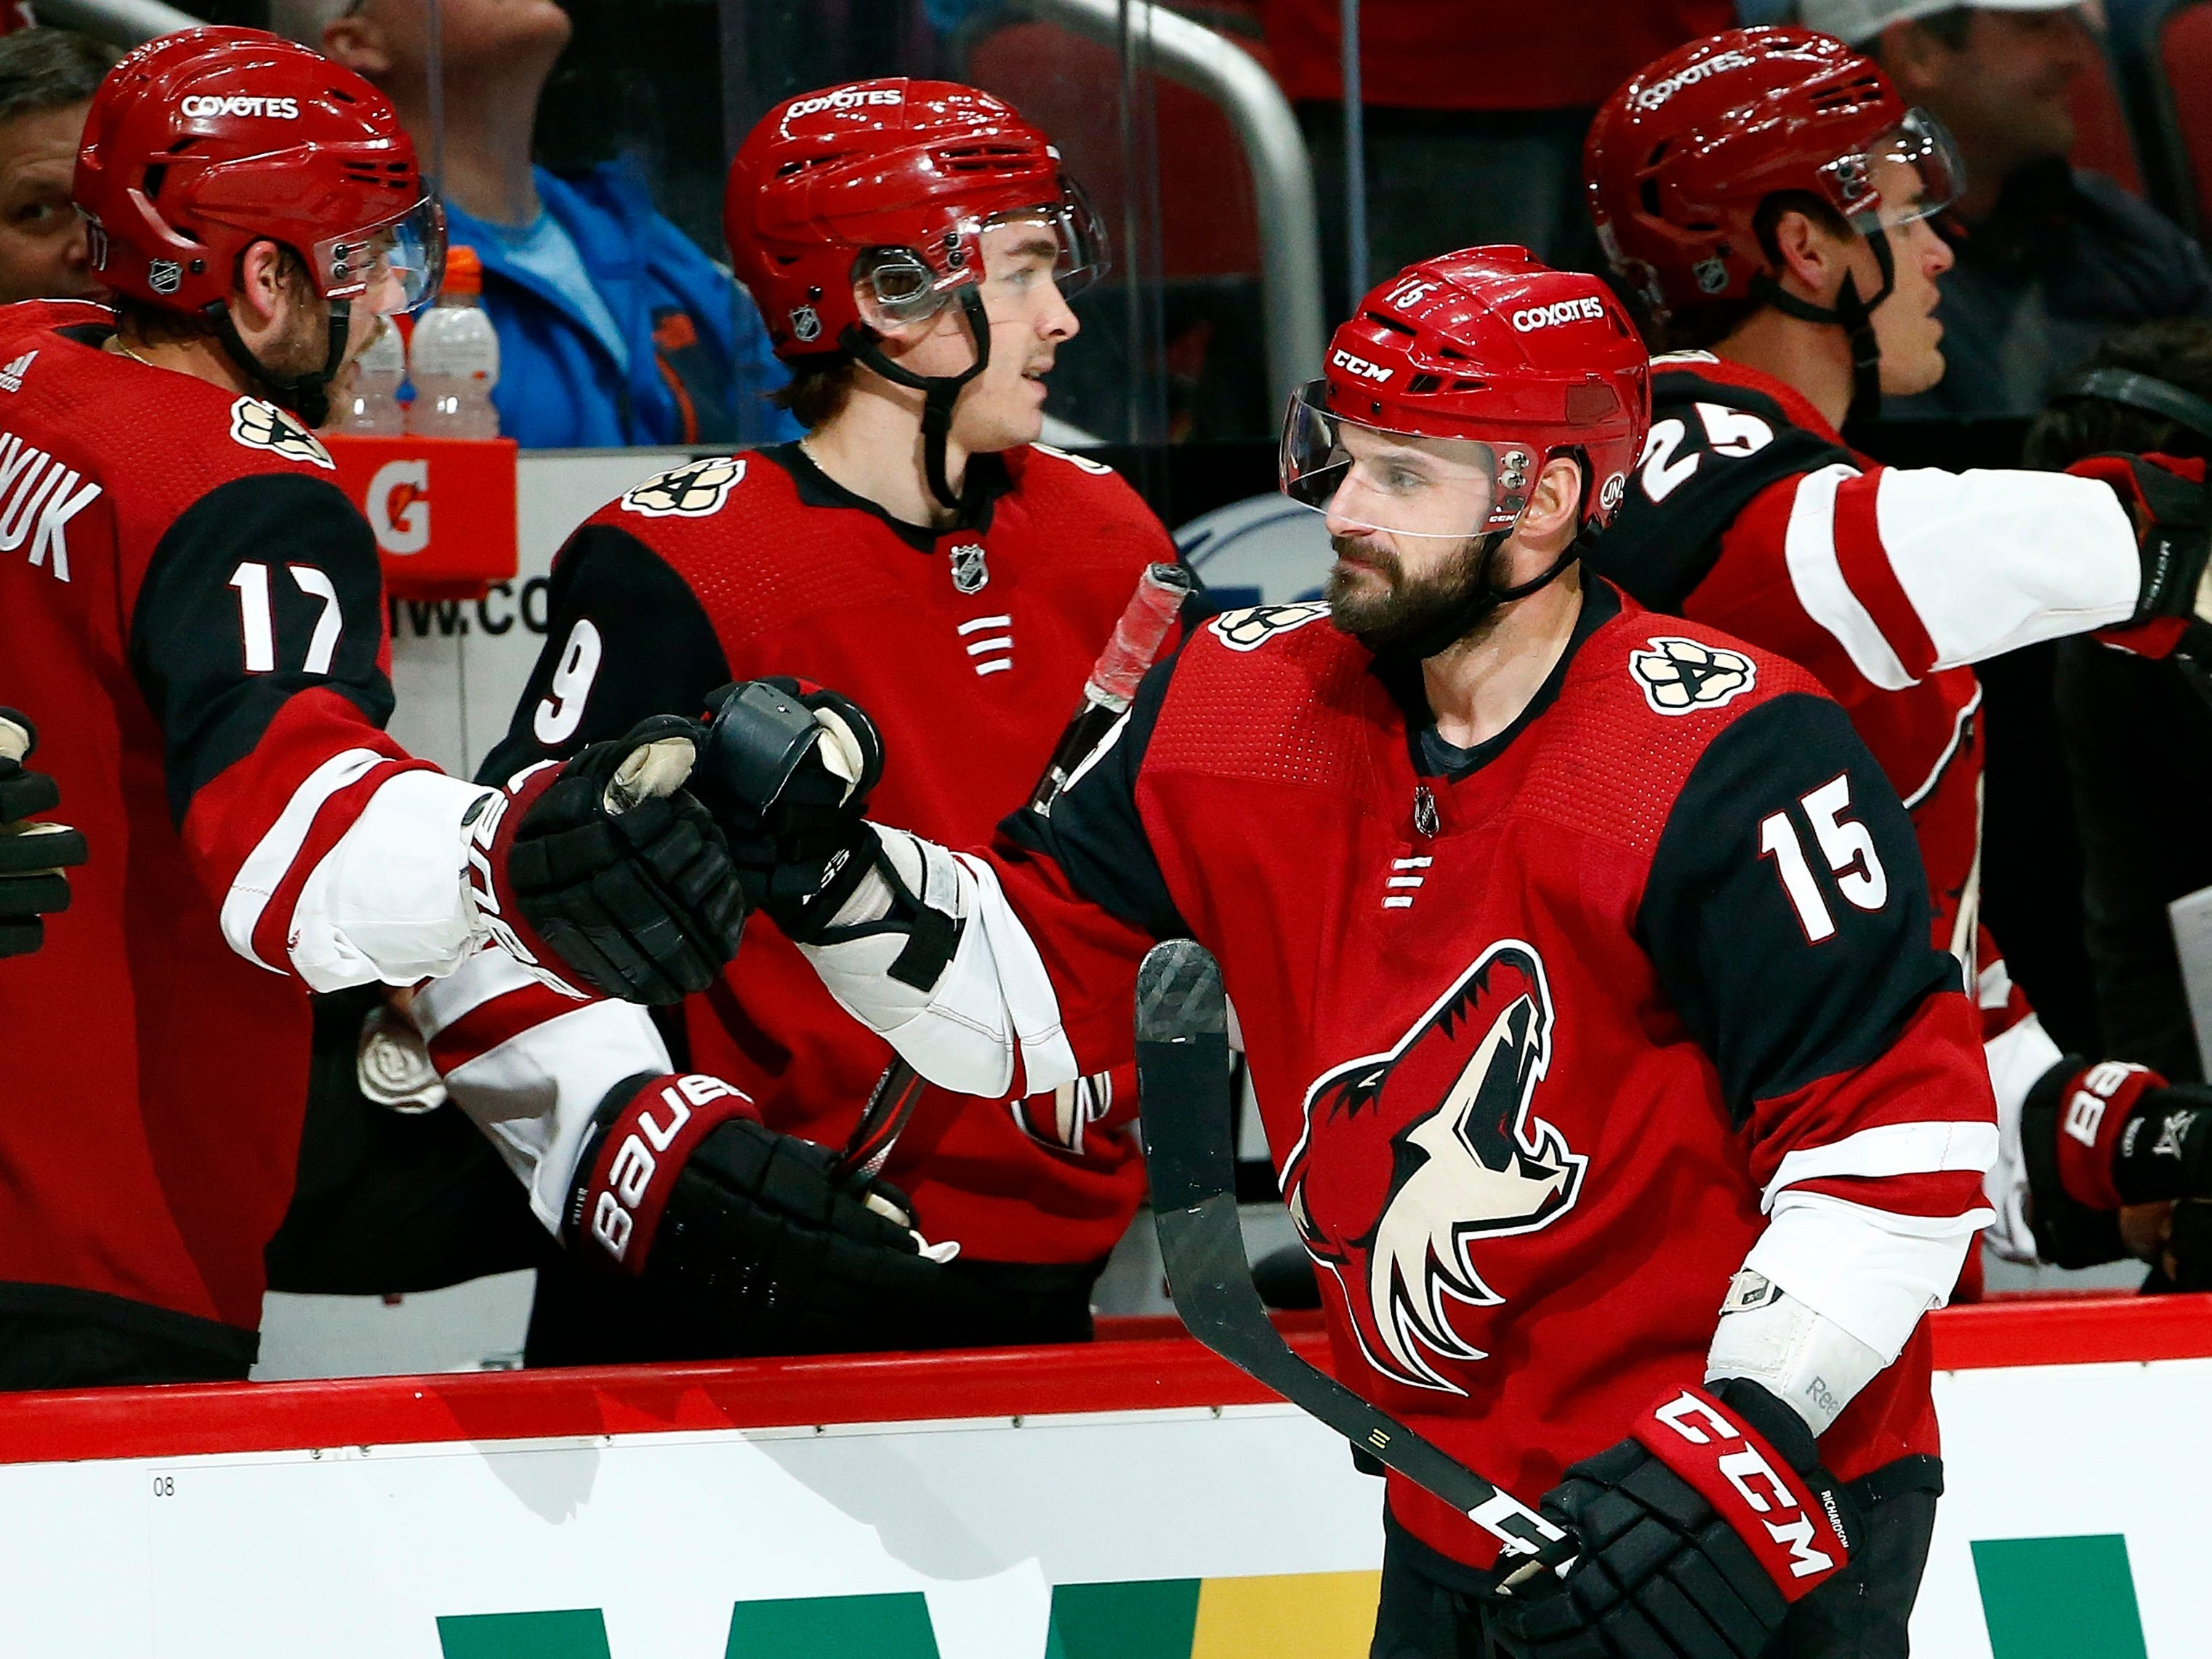 Arizona Coyotes center Brad Richardson (15) celebrates his second goal against the Vancouver Canucks during the first period of an NHL hockey game with Coyotes center Alex Galchenyuk (17), center Clayton Keller (9) and center Nick Cousins (25) Thursday, Feb. 28, 2019, in Glendale, Ariz.